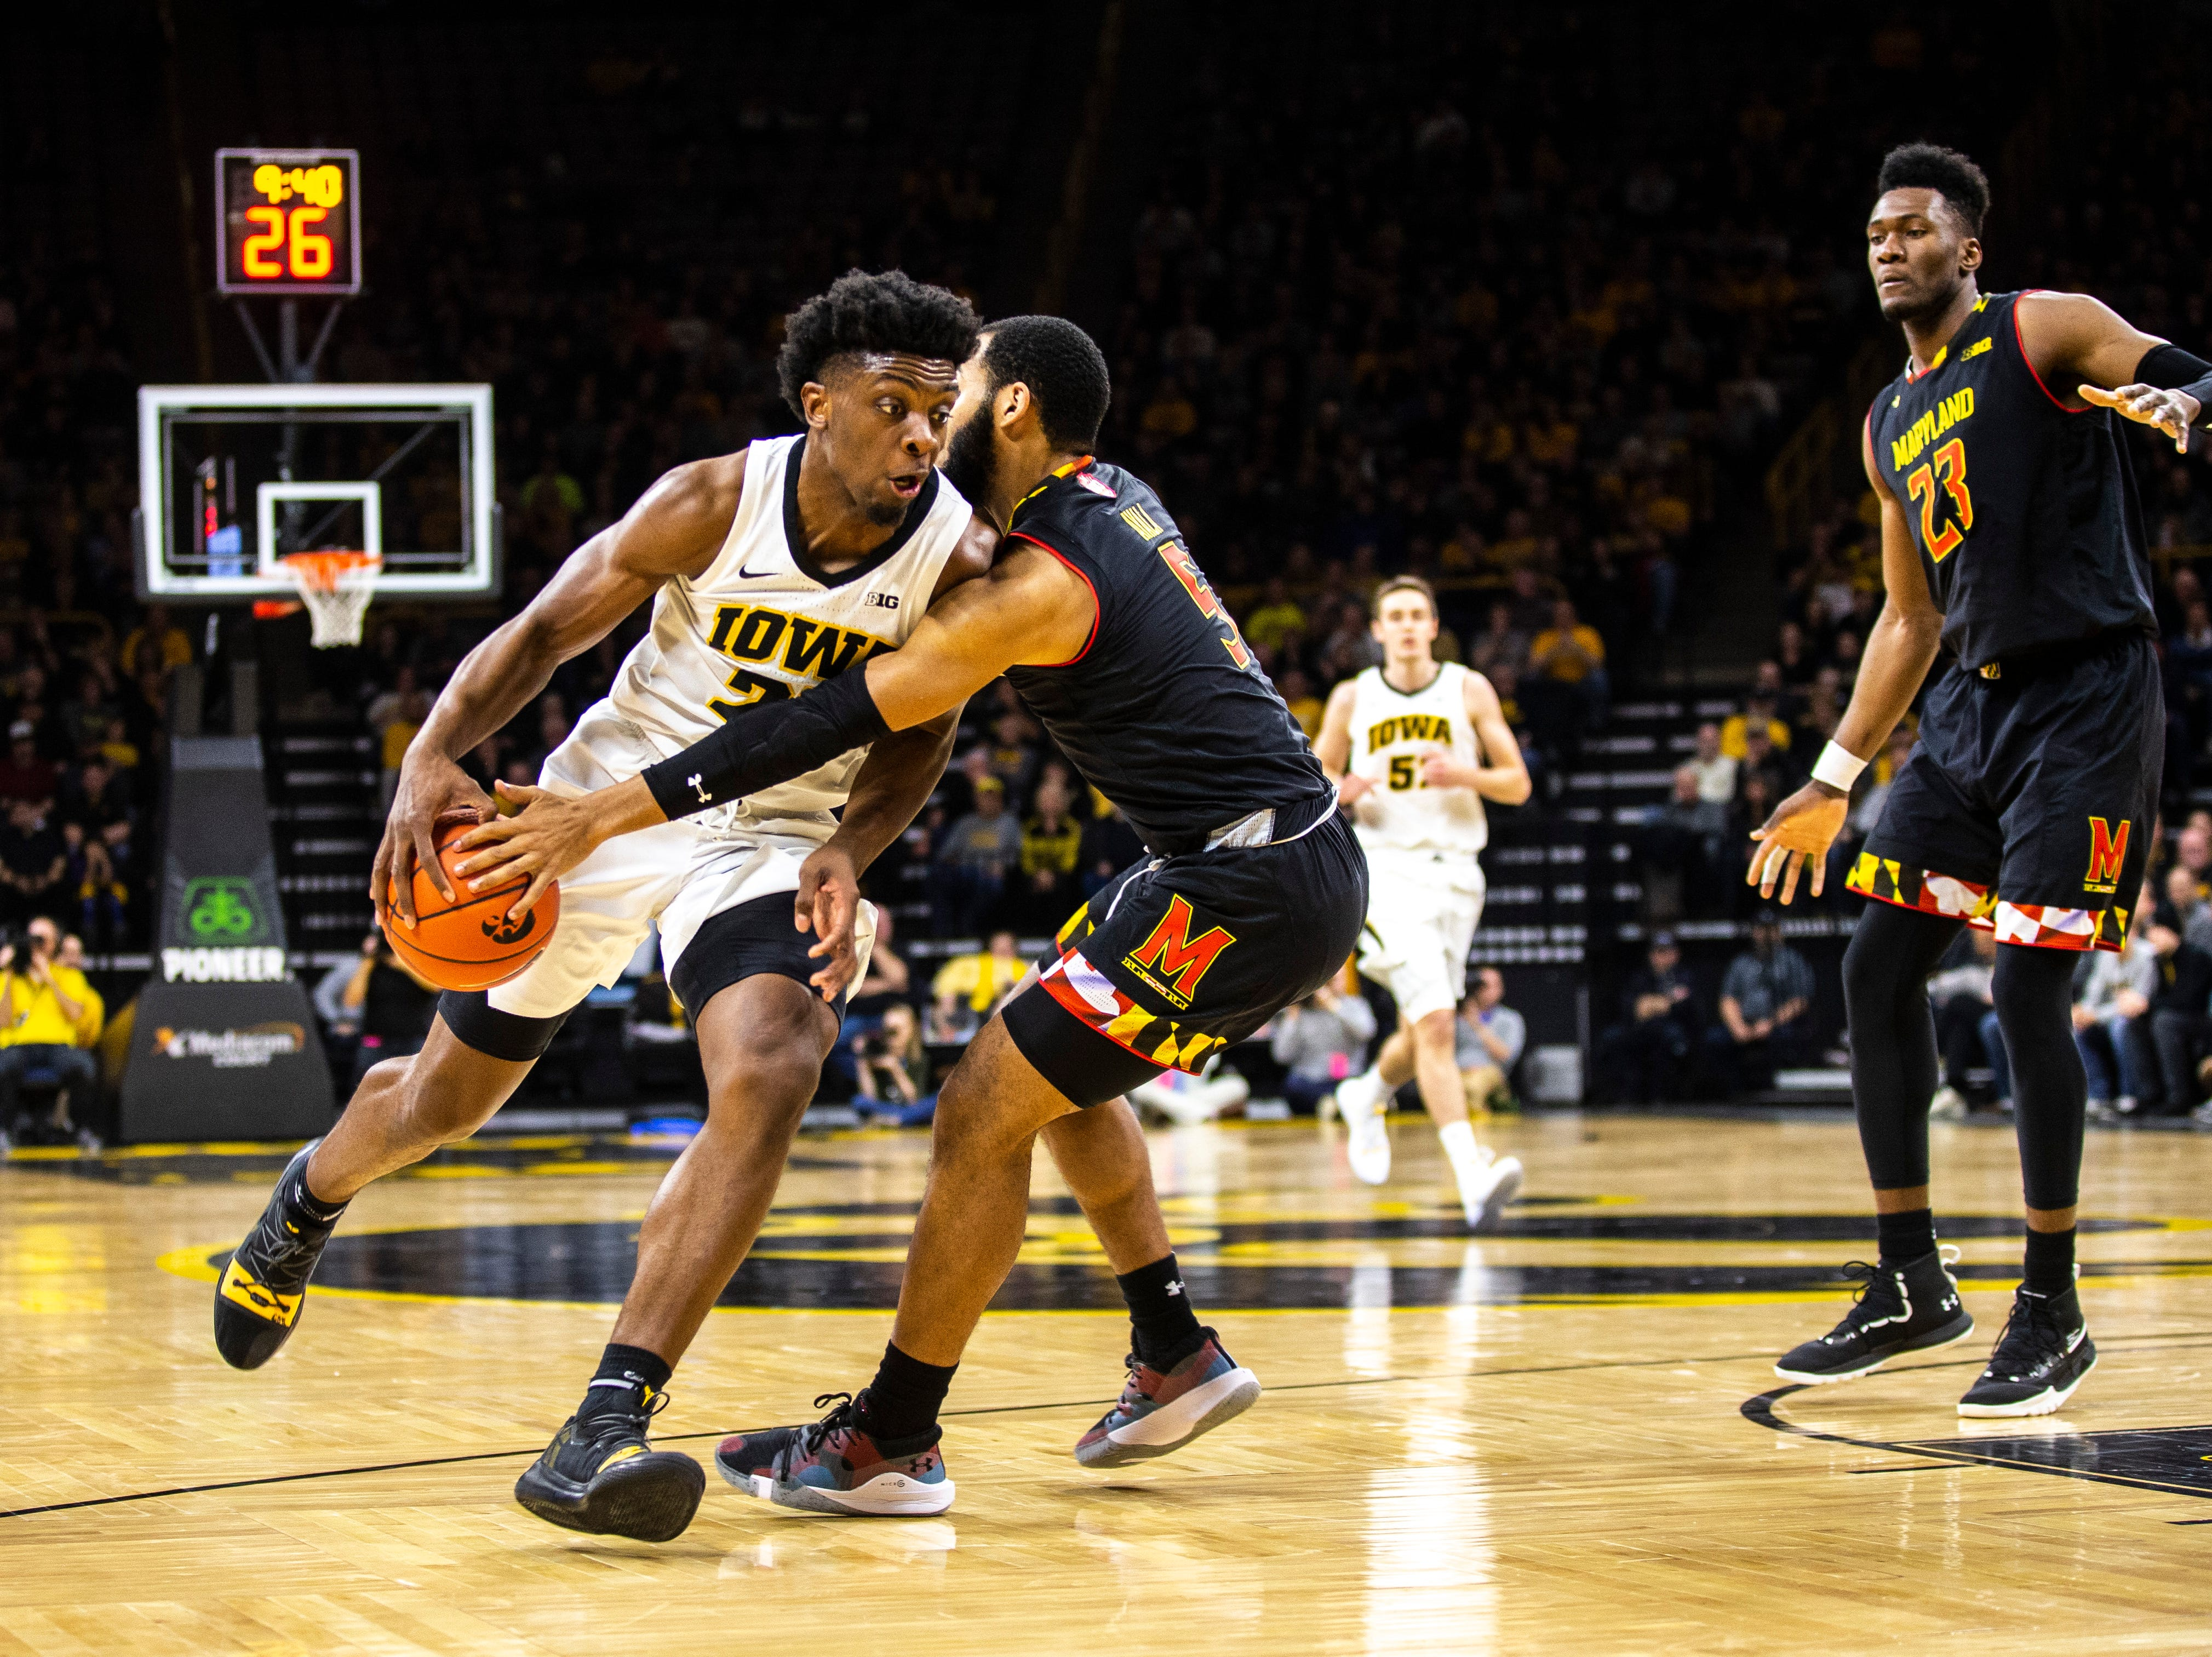 Iowa forward Tyler Cook (25) drives to the basket while Maryland guard Eric Ayala (5) defends during a NCAA Big Ten Conference men's basketball game on Tuesday, Feb. 19, 2019 at Carver-Hawkeye Arena in Iowa City, Iowa.